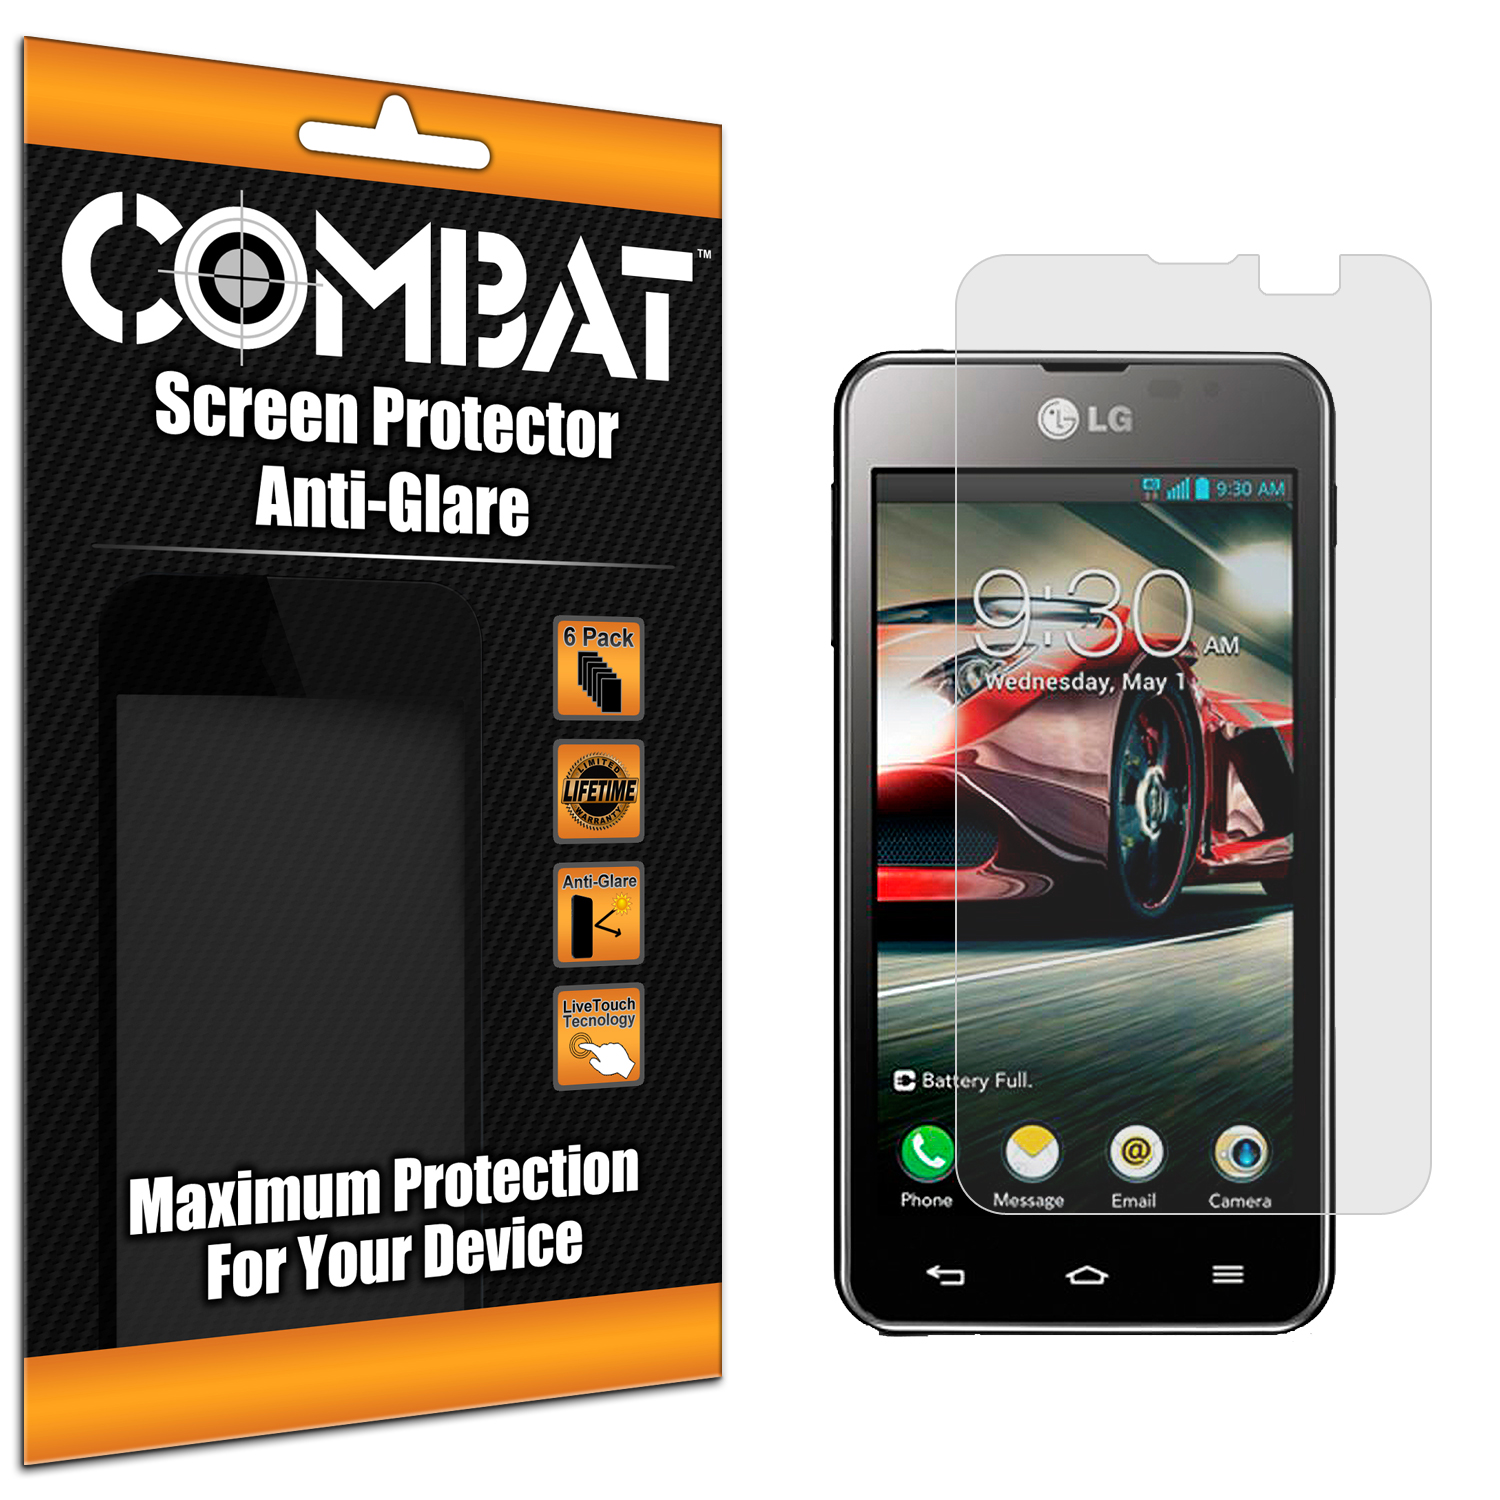 LG Optimus F5 Combat 6 Pack Anti-Glare Matte Screen Protector